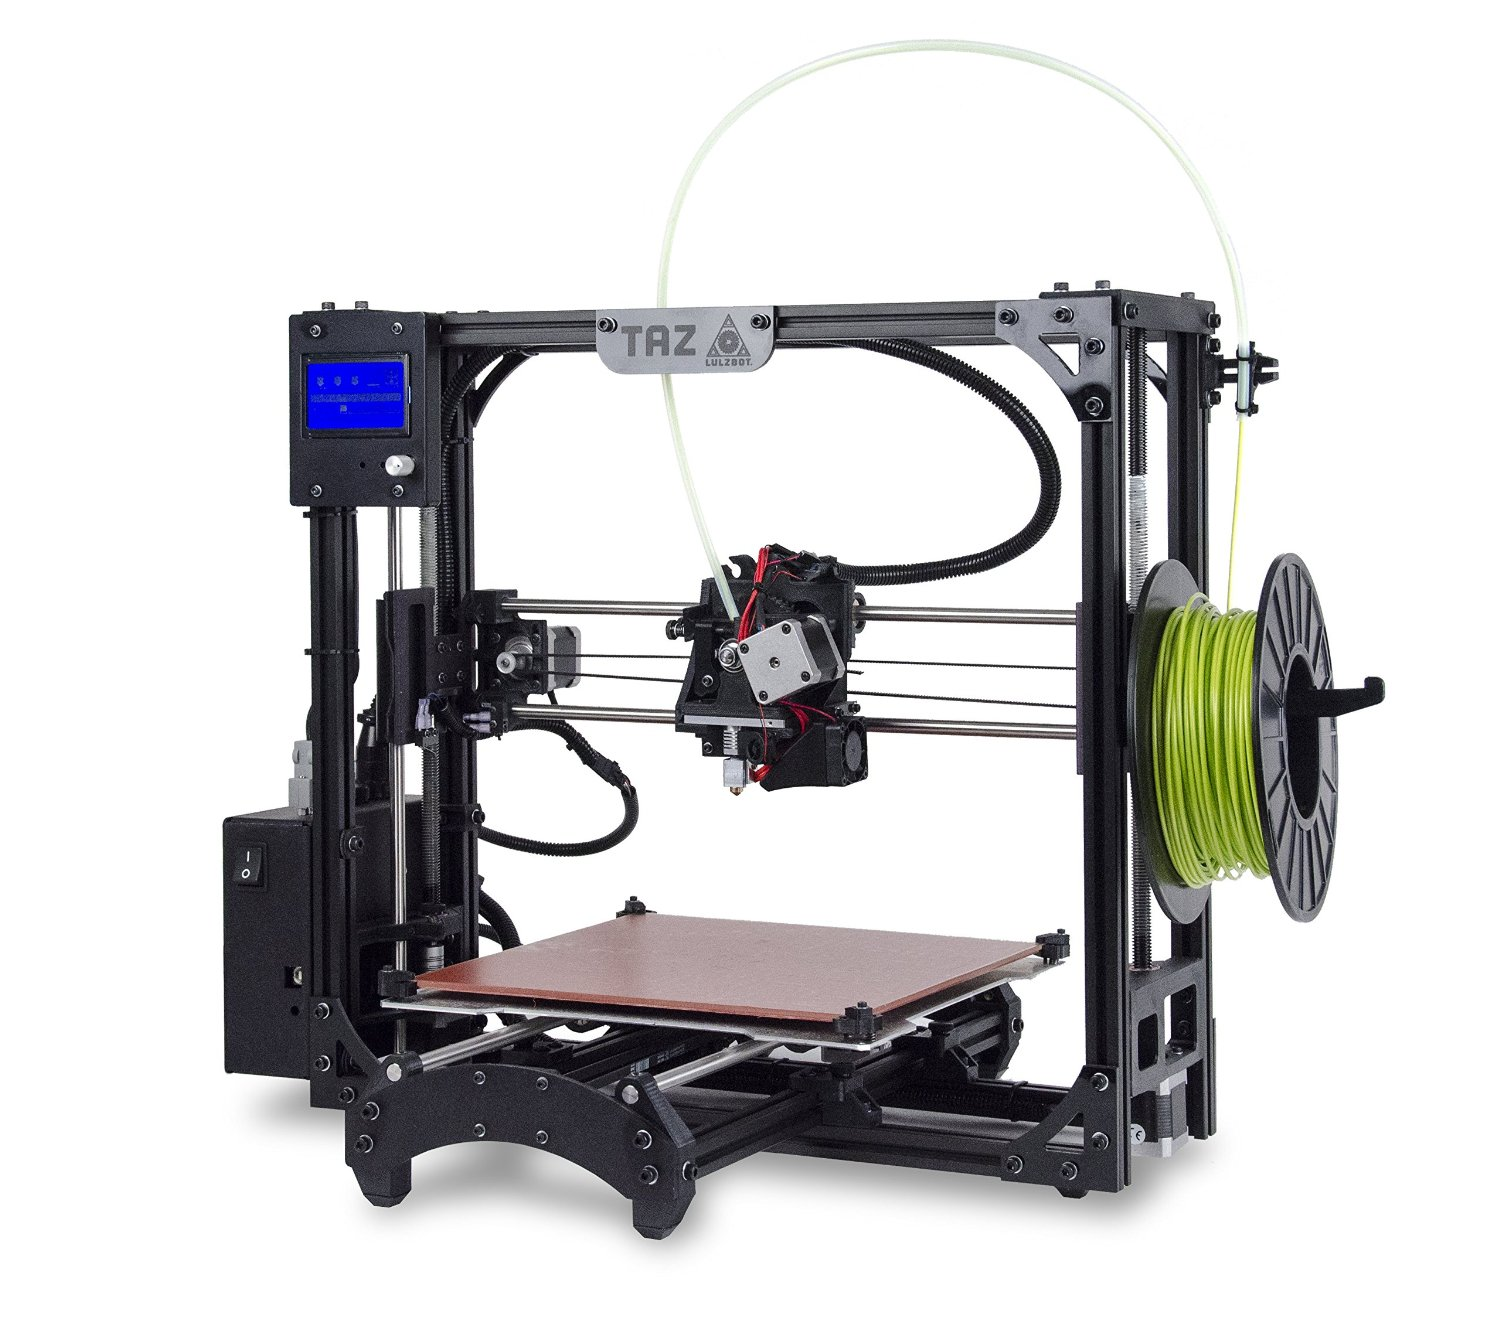 Review 3D Printer: New LulzBot TAZ 5 single and dual extruders